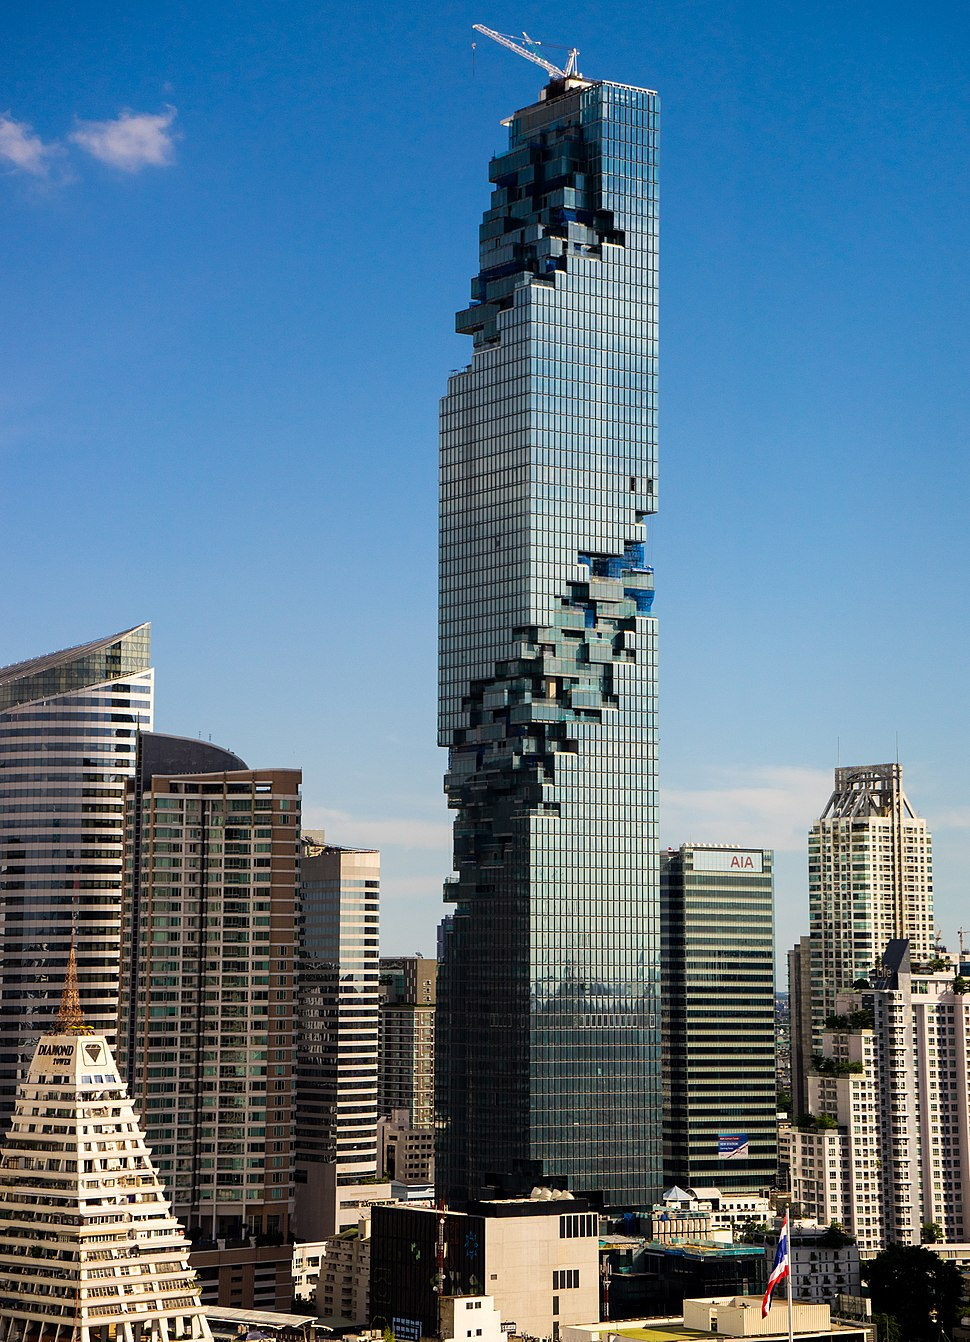 MahaNakhon by kylehase